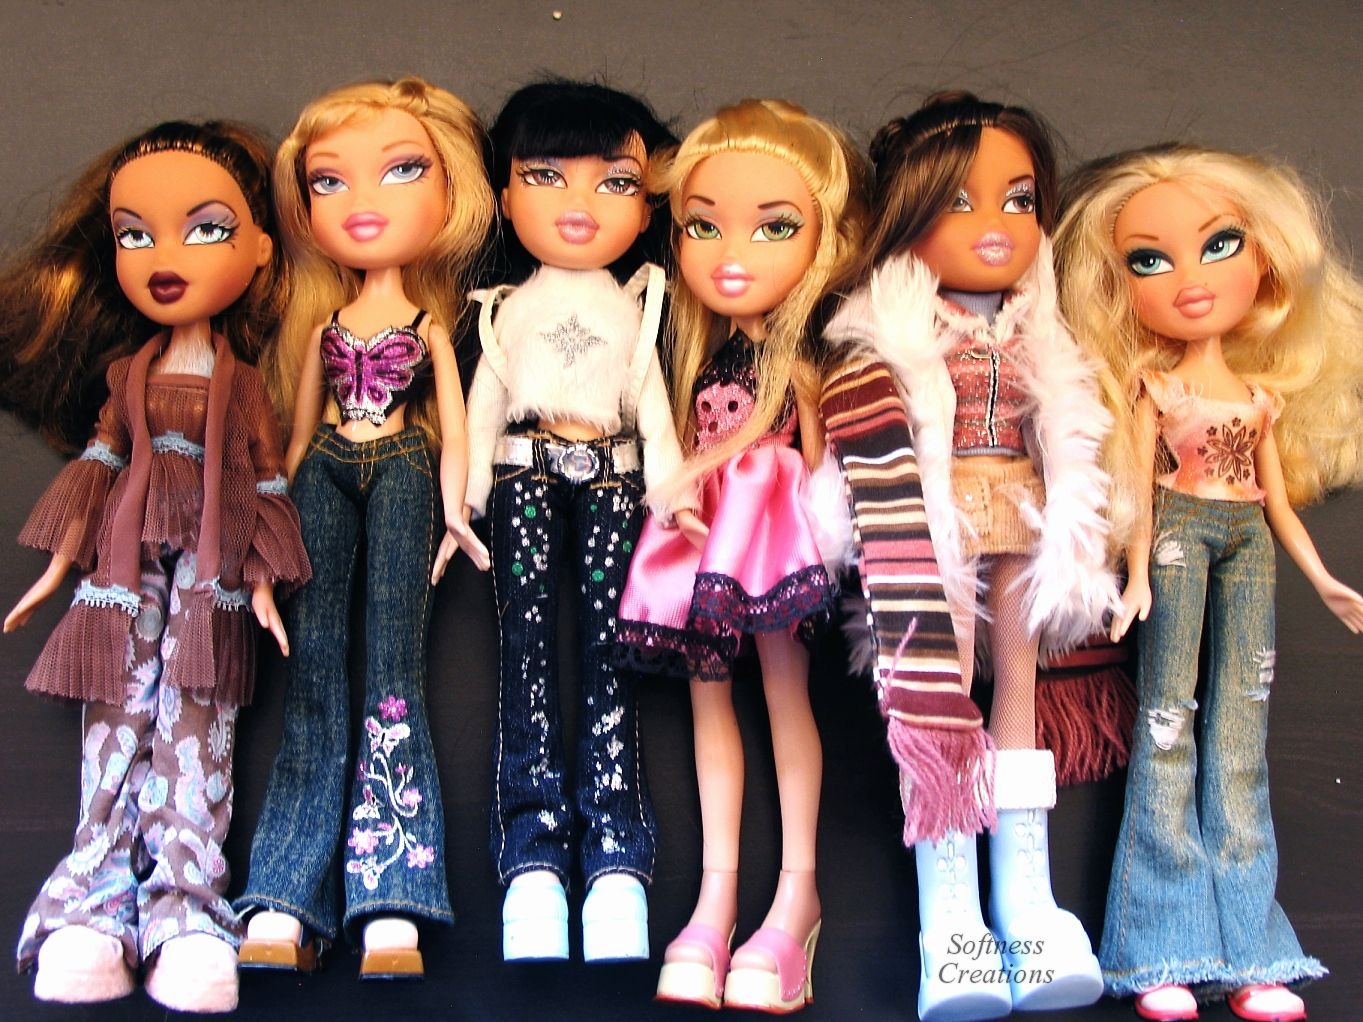 Uncategorized Bratz Doll Images bratz dolls history characteristics and more